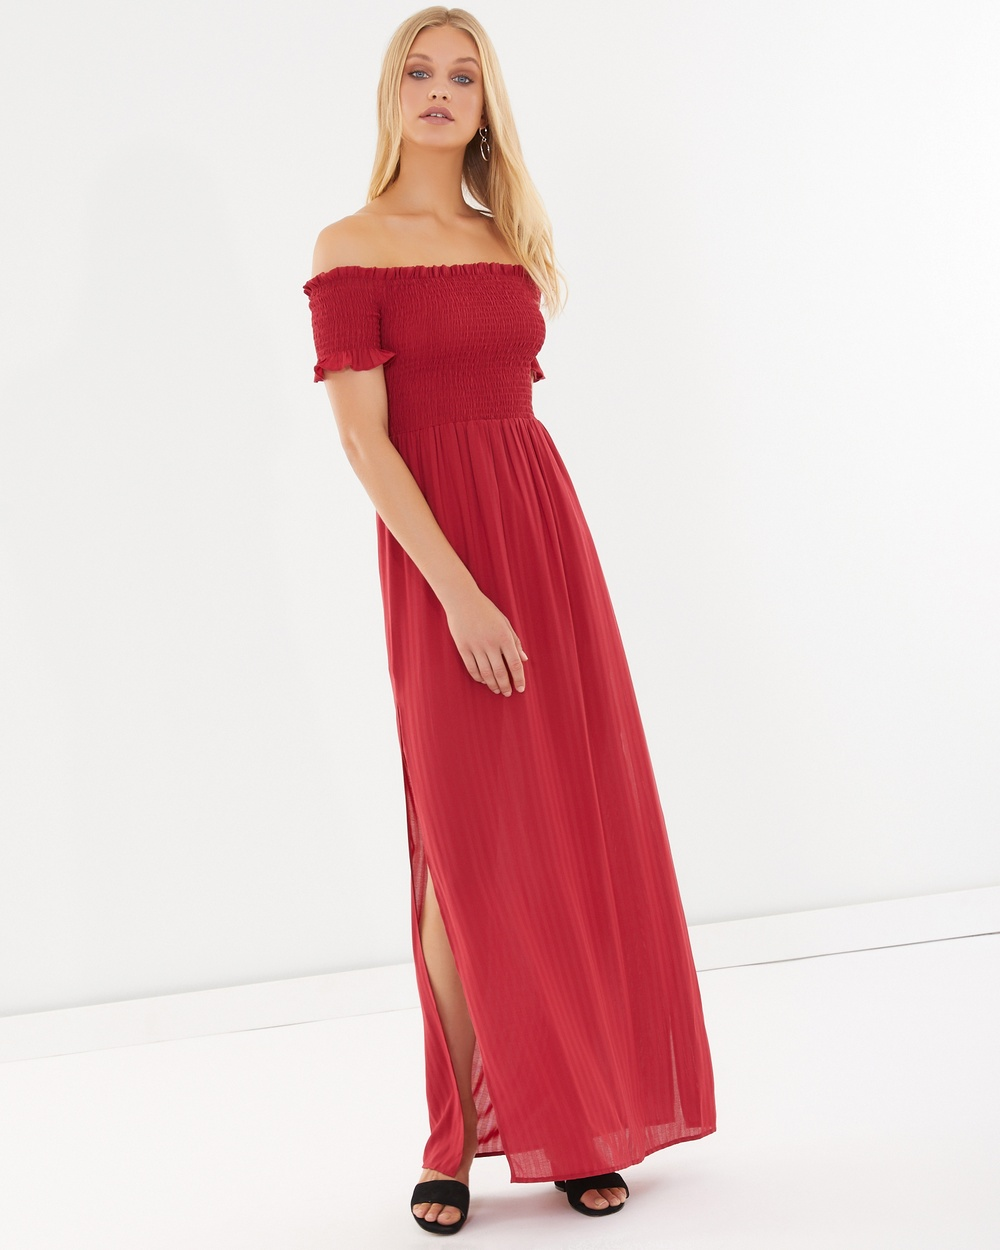 Calli Emmie Maxi Dress Dresses Red Emmie Maxi Dress